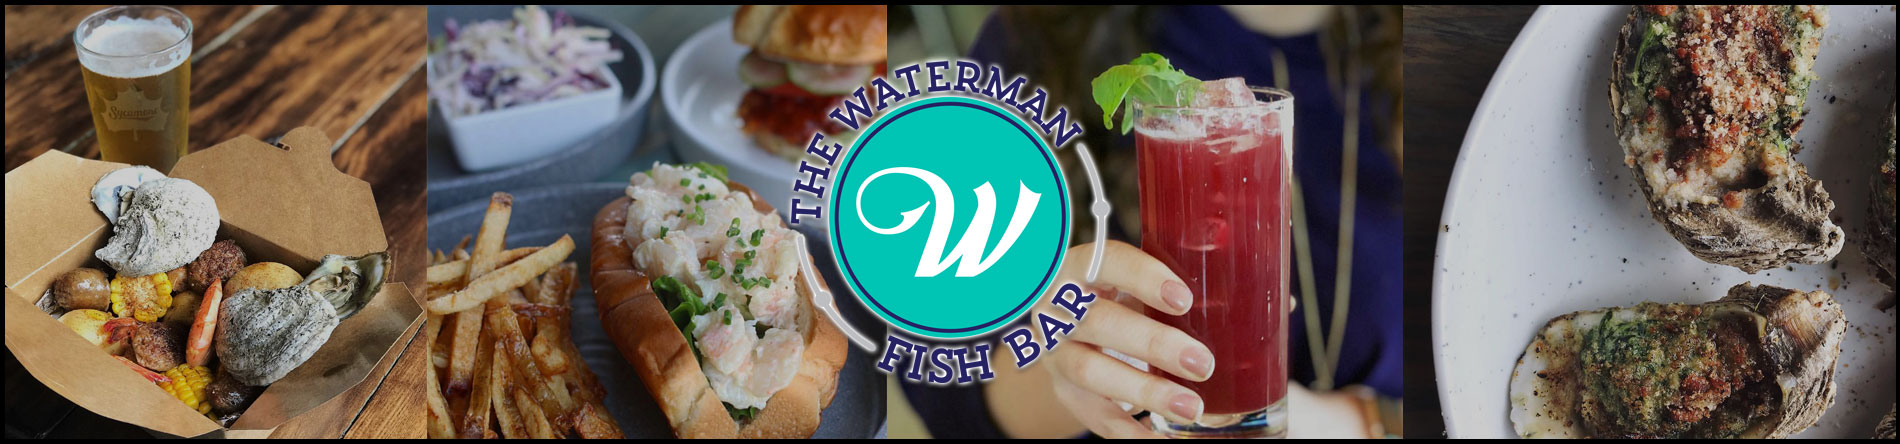 The Waterman Fish Bar is a Seafood Restaurant in Charlotte, NC